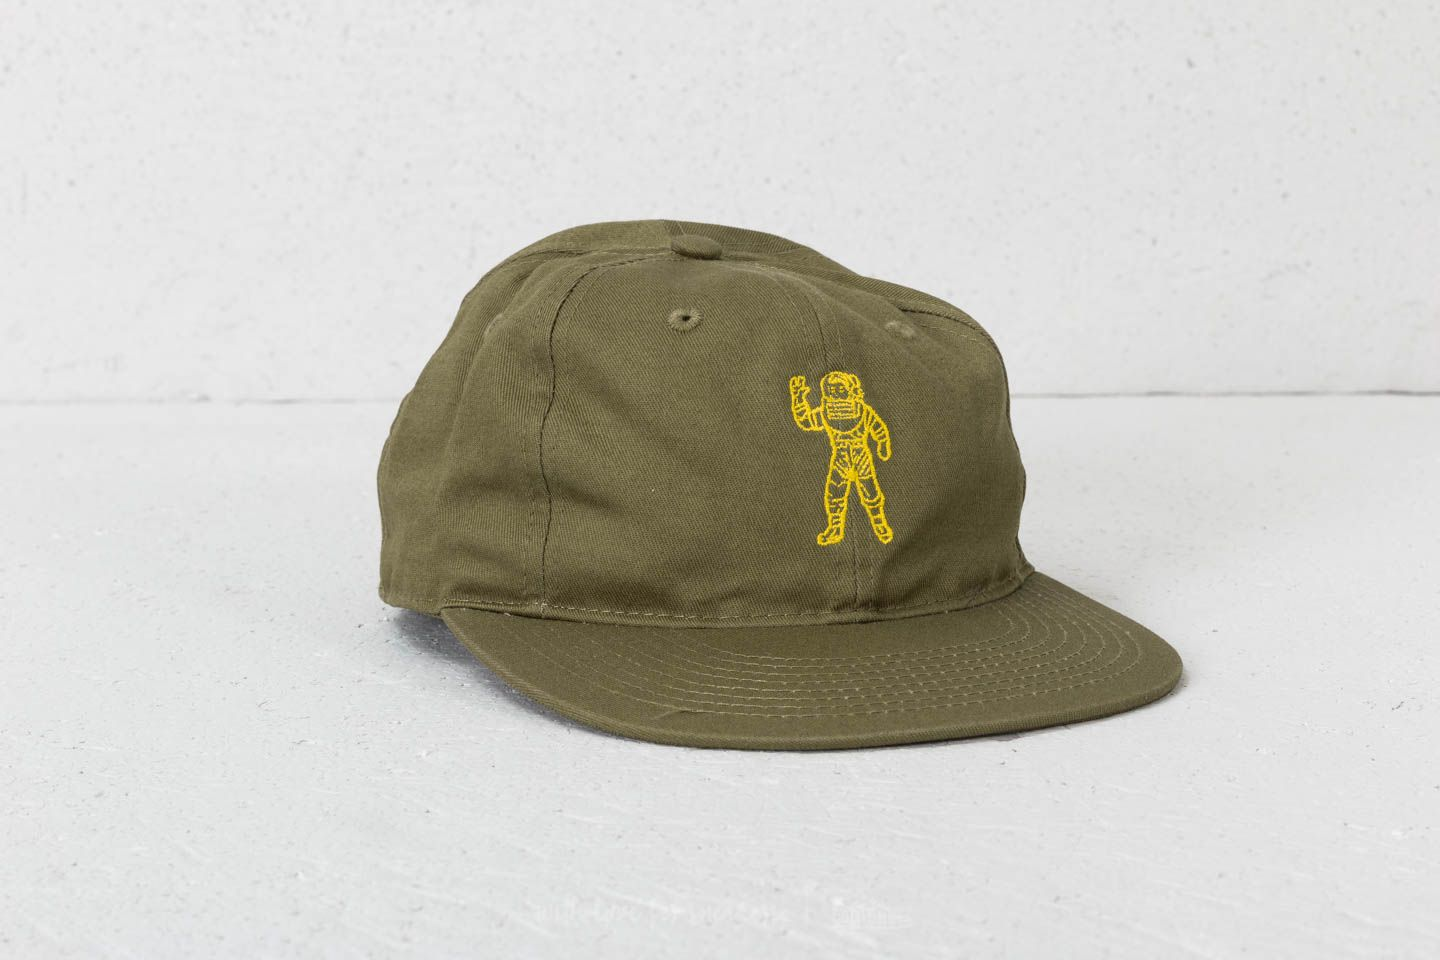 Billionaire Boys Club Standing Astronaut 6 Panel Cap Olive